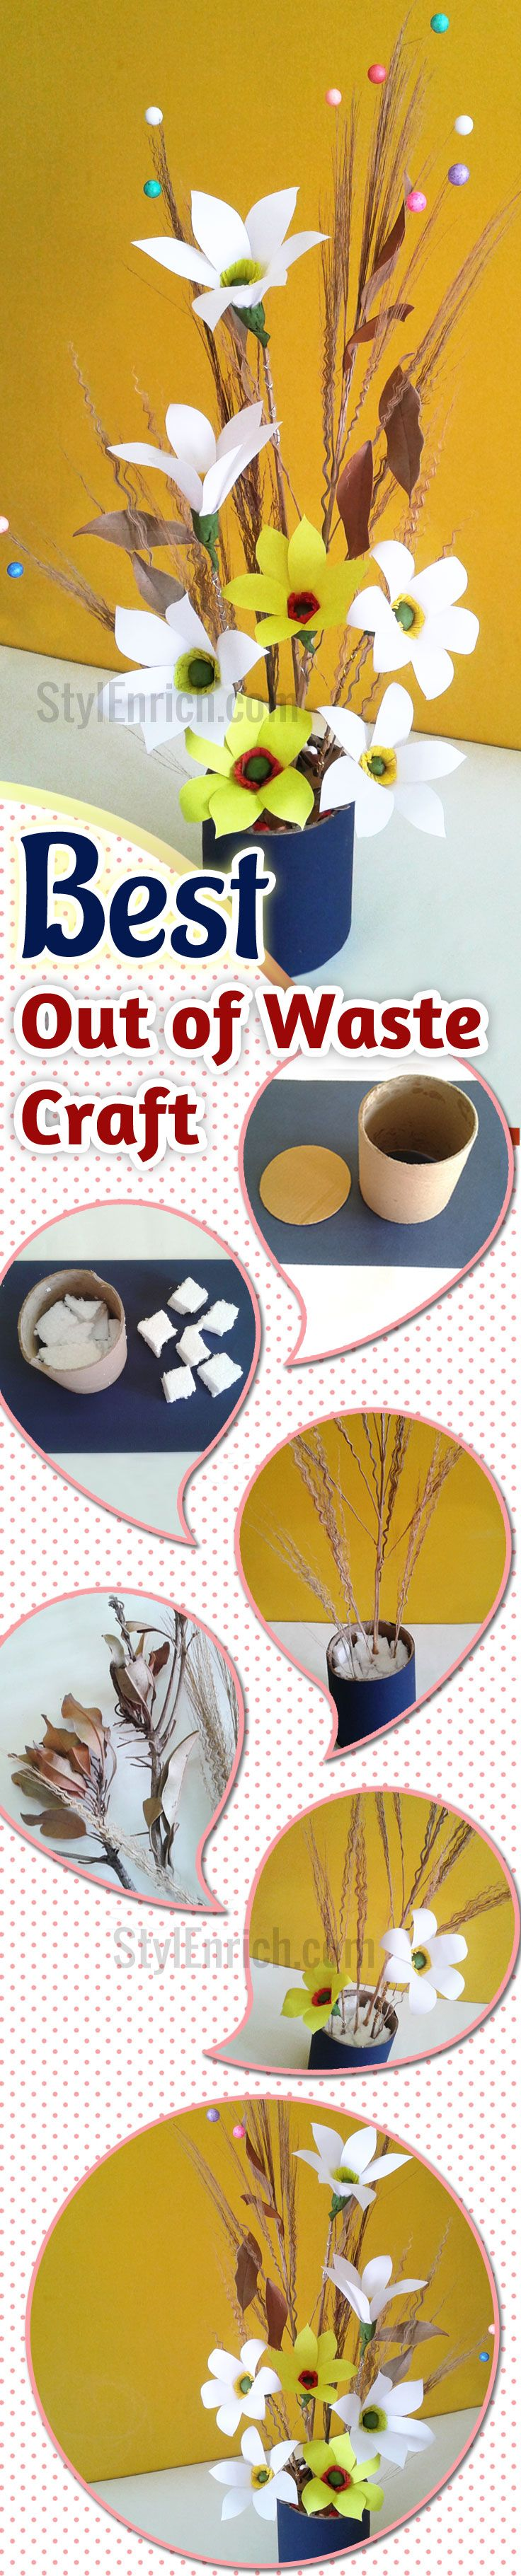 49 best images about best out of waste on pinterest for Best out of waste house